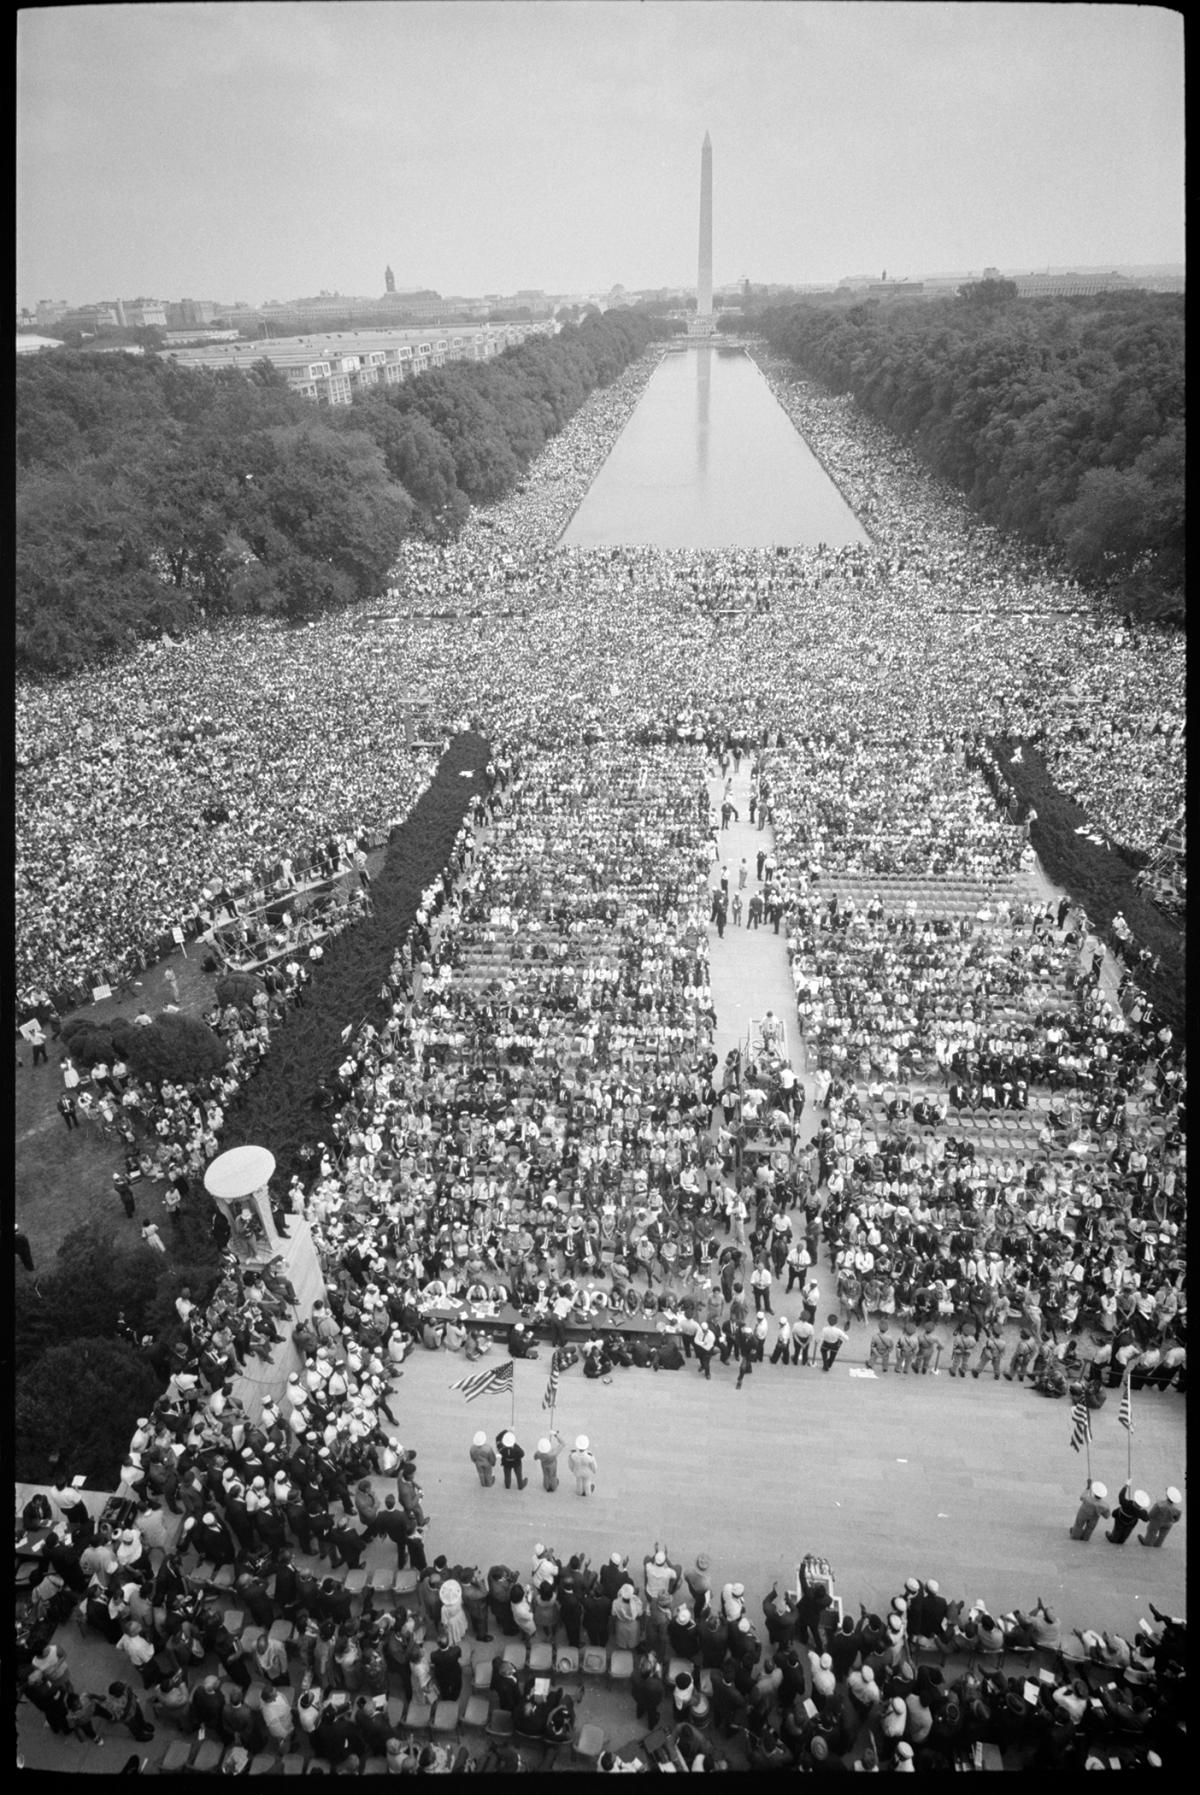 black and white photograph of view down the national mall, large crowd of people